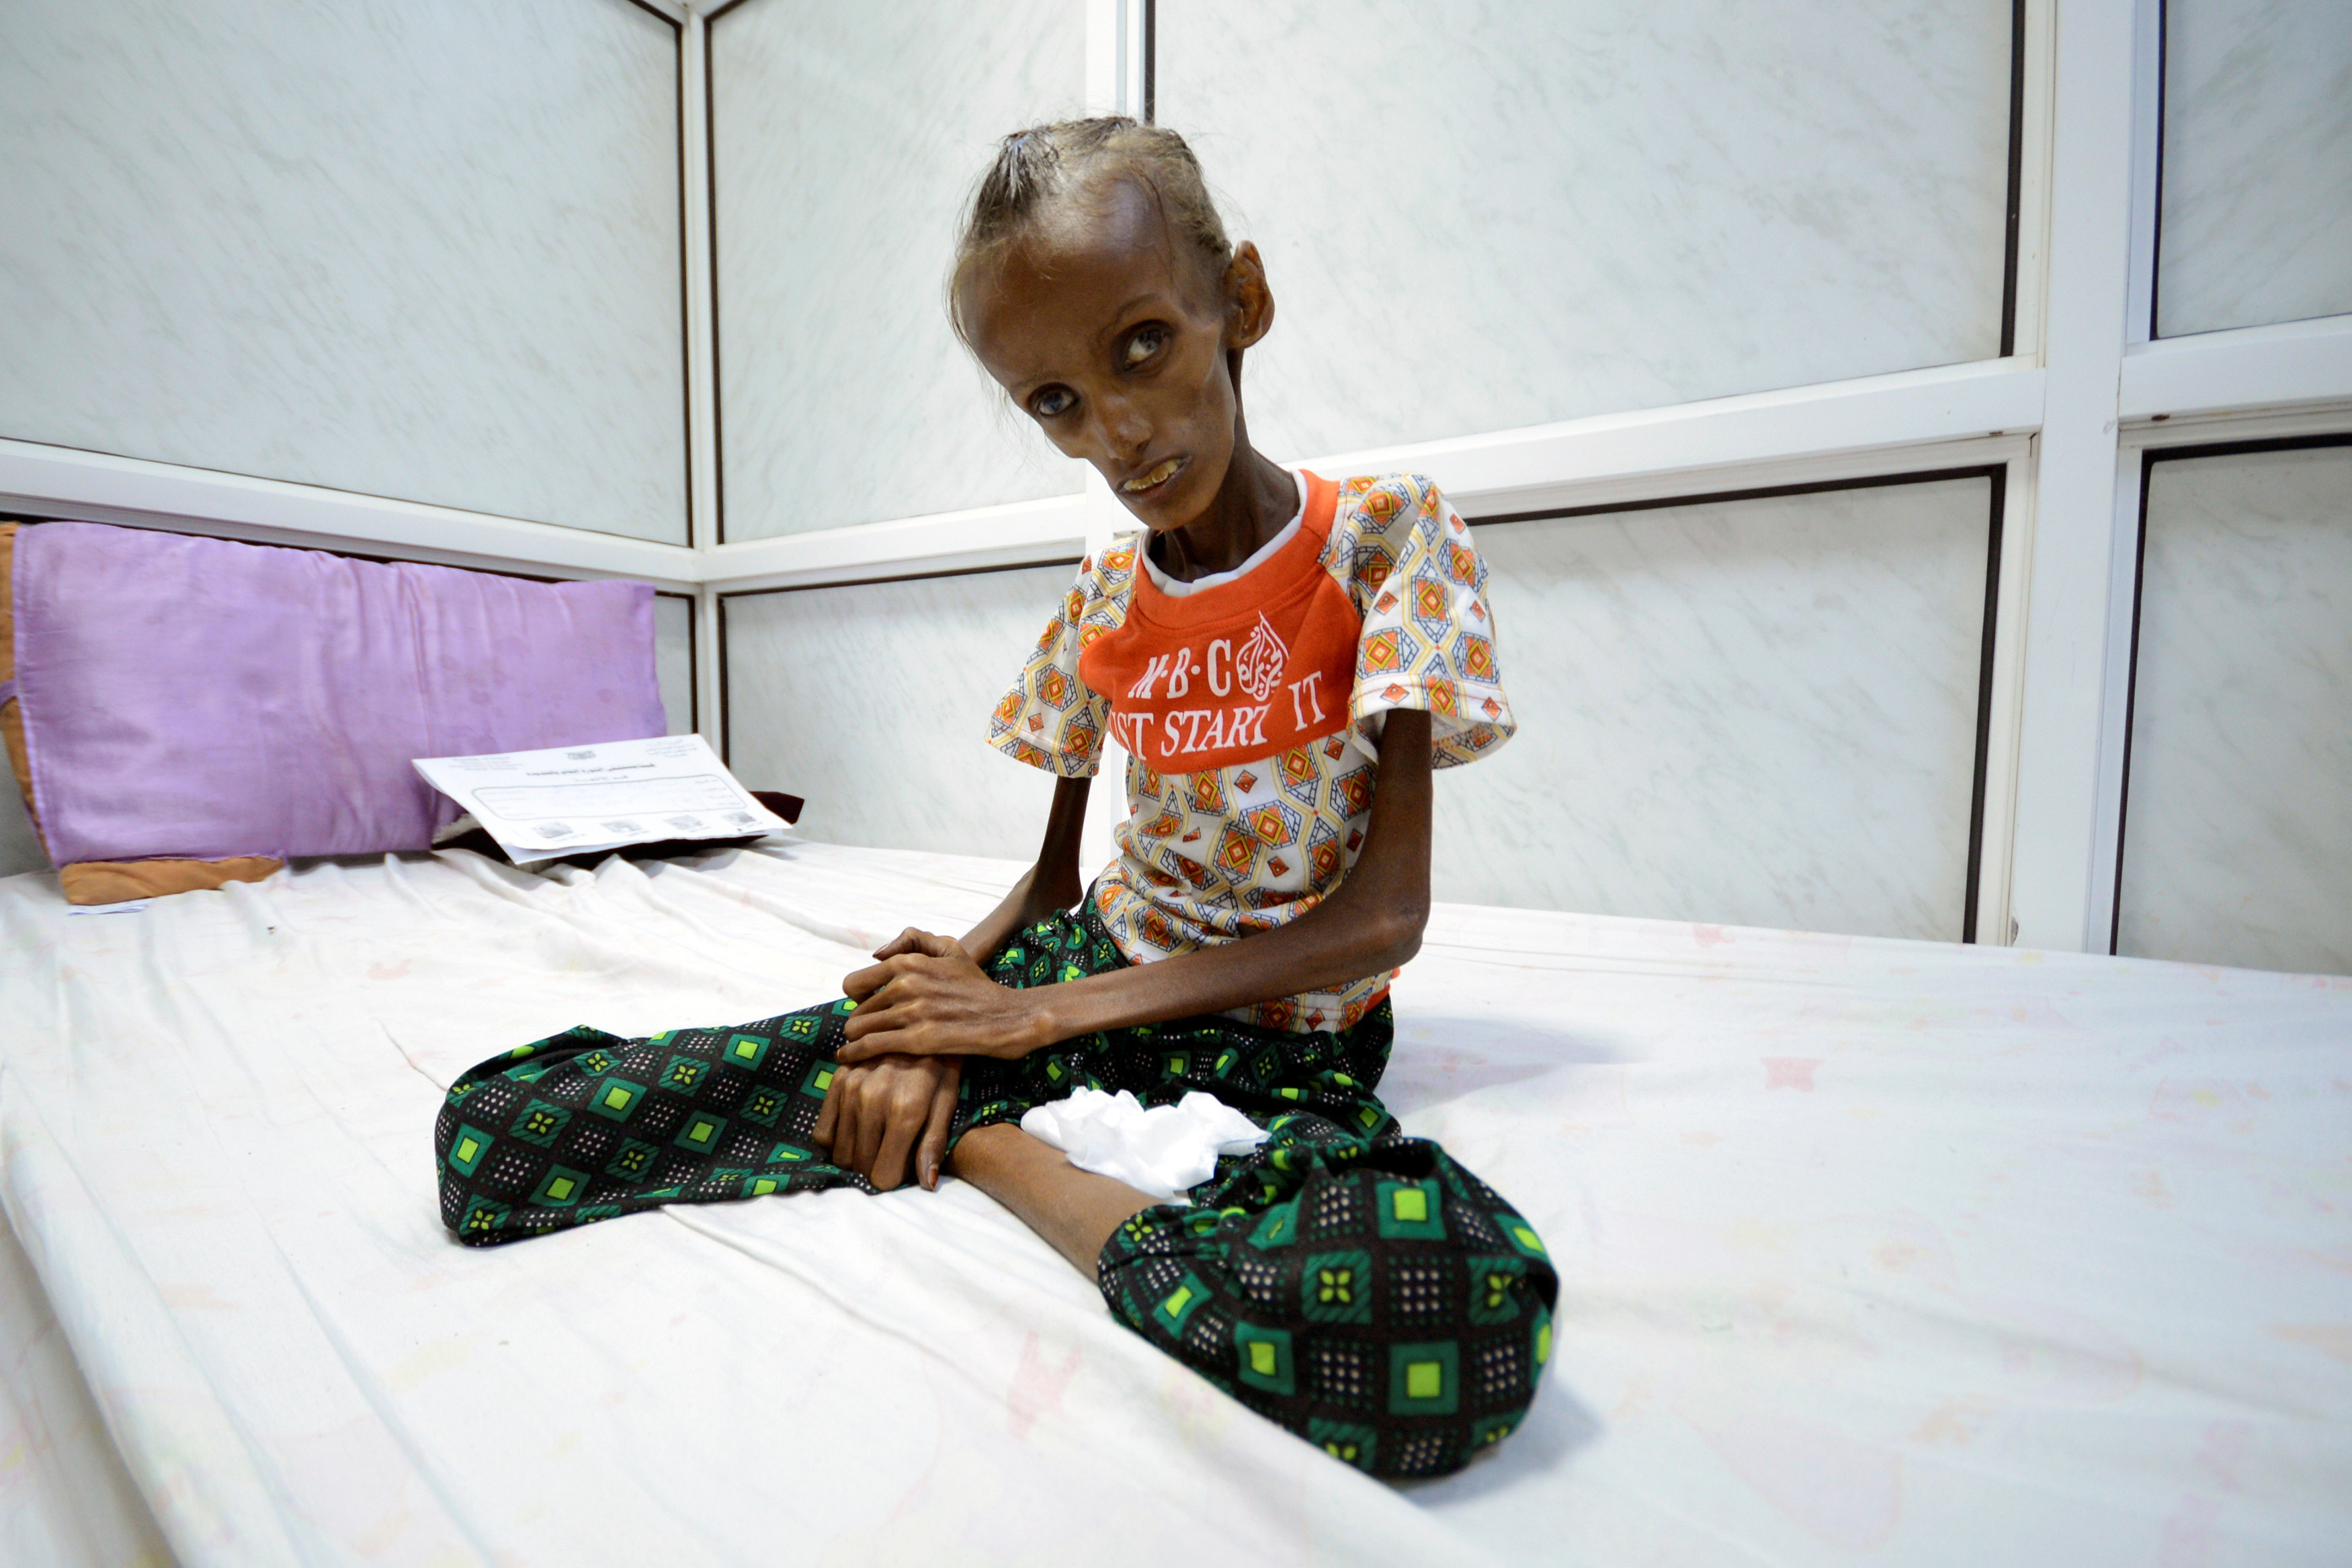 Saida Ahmad Baghili, 18, who is affected by severe acute malnutrition, sits on a bed at the al-Thawra hospital in the Red Sea port city of Houdieda, Yemen October 24, 2016. REUTERS/Abduljabbar Zeyad TPX IMAGES OF THE DAY - RTX2Q6RX